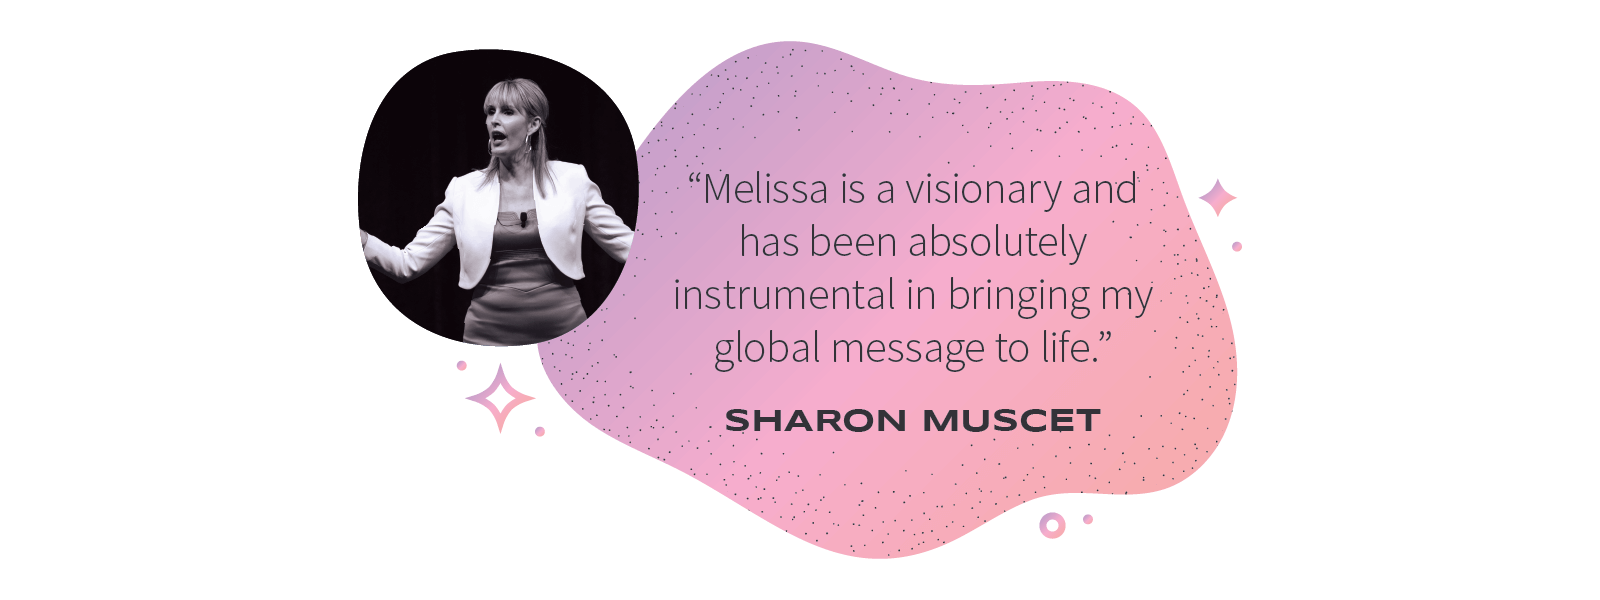 """""""Melissa is a visionary and has been absolutelyinstrumental in bringing myglobal message to life."""" –Sharon Muscet"""